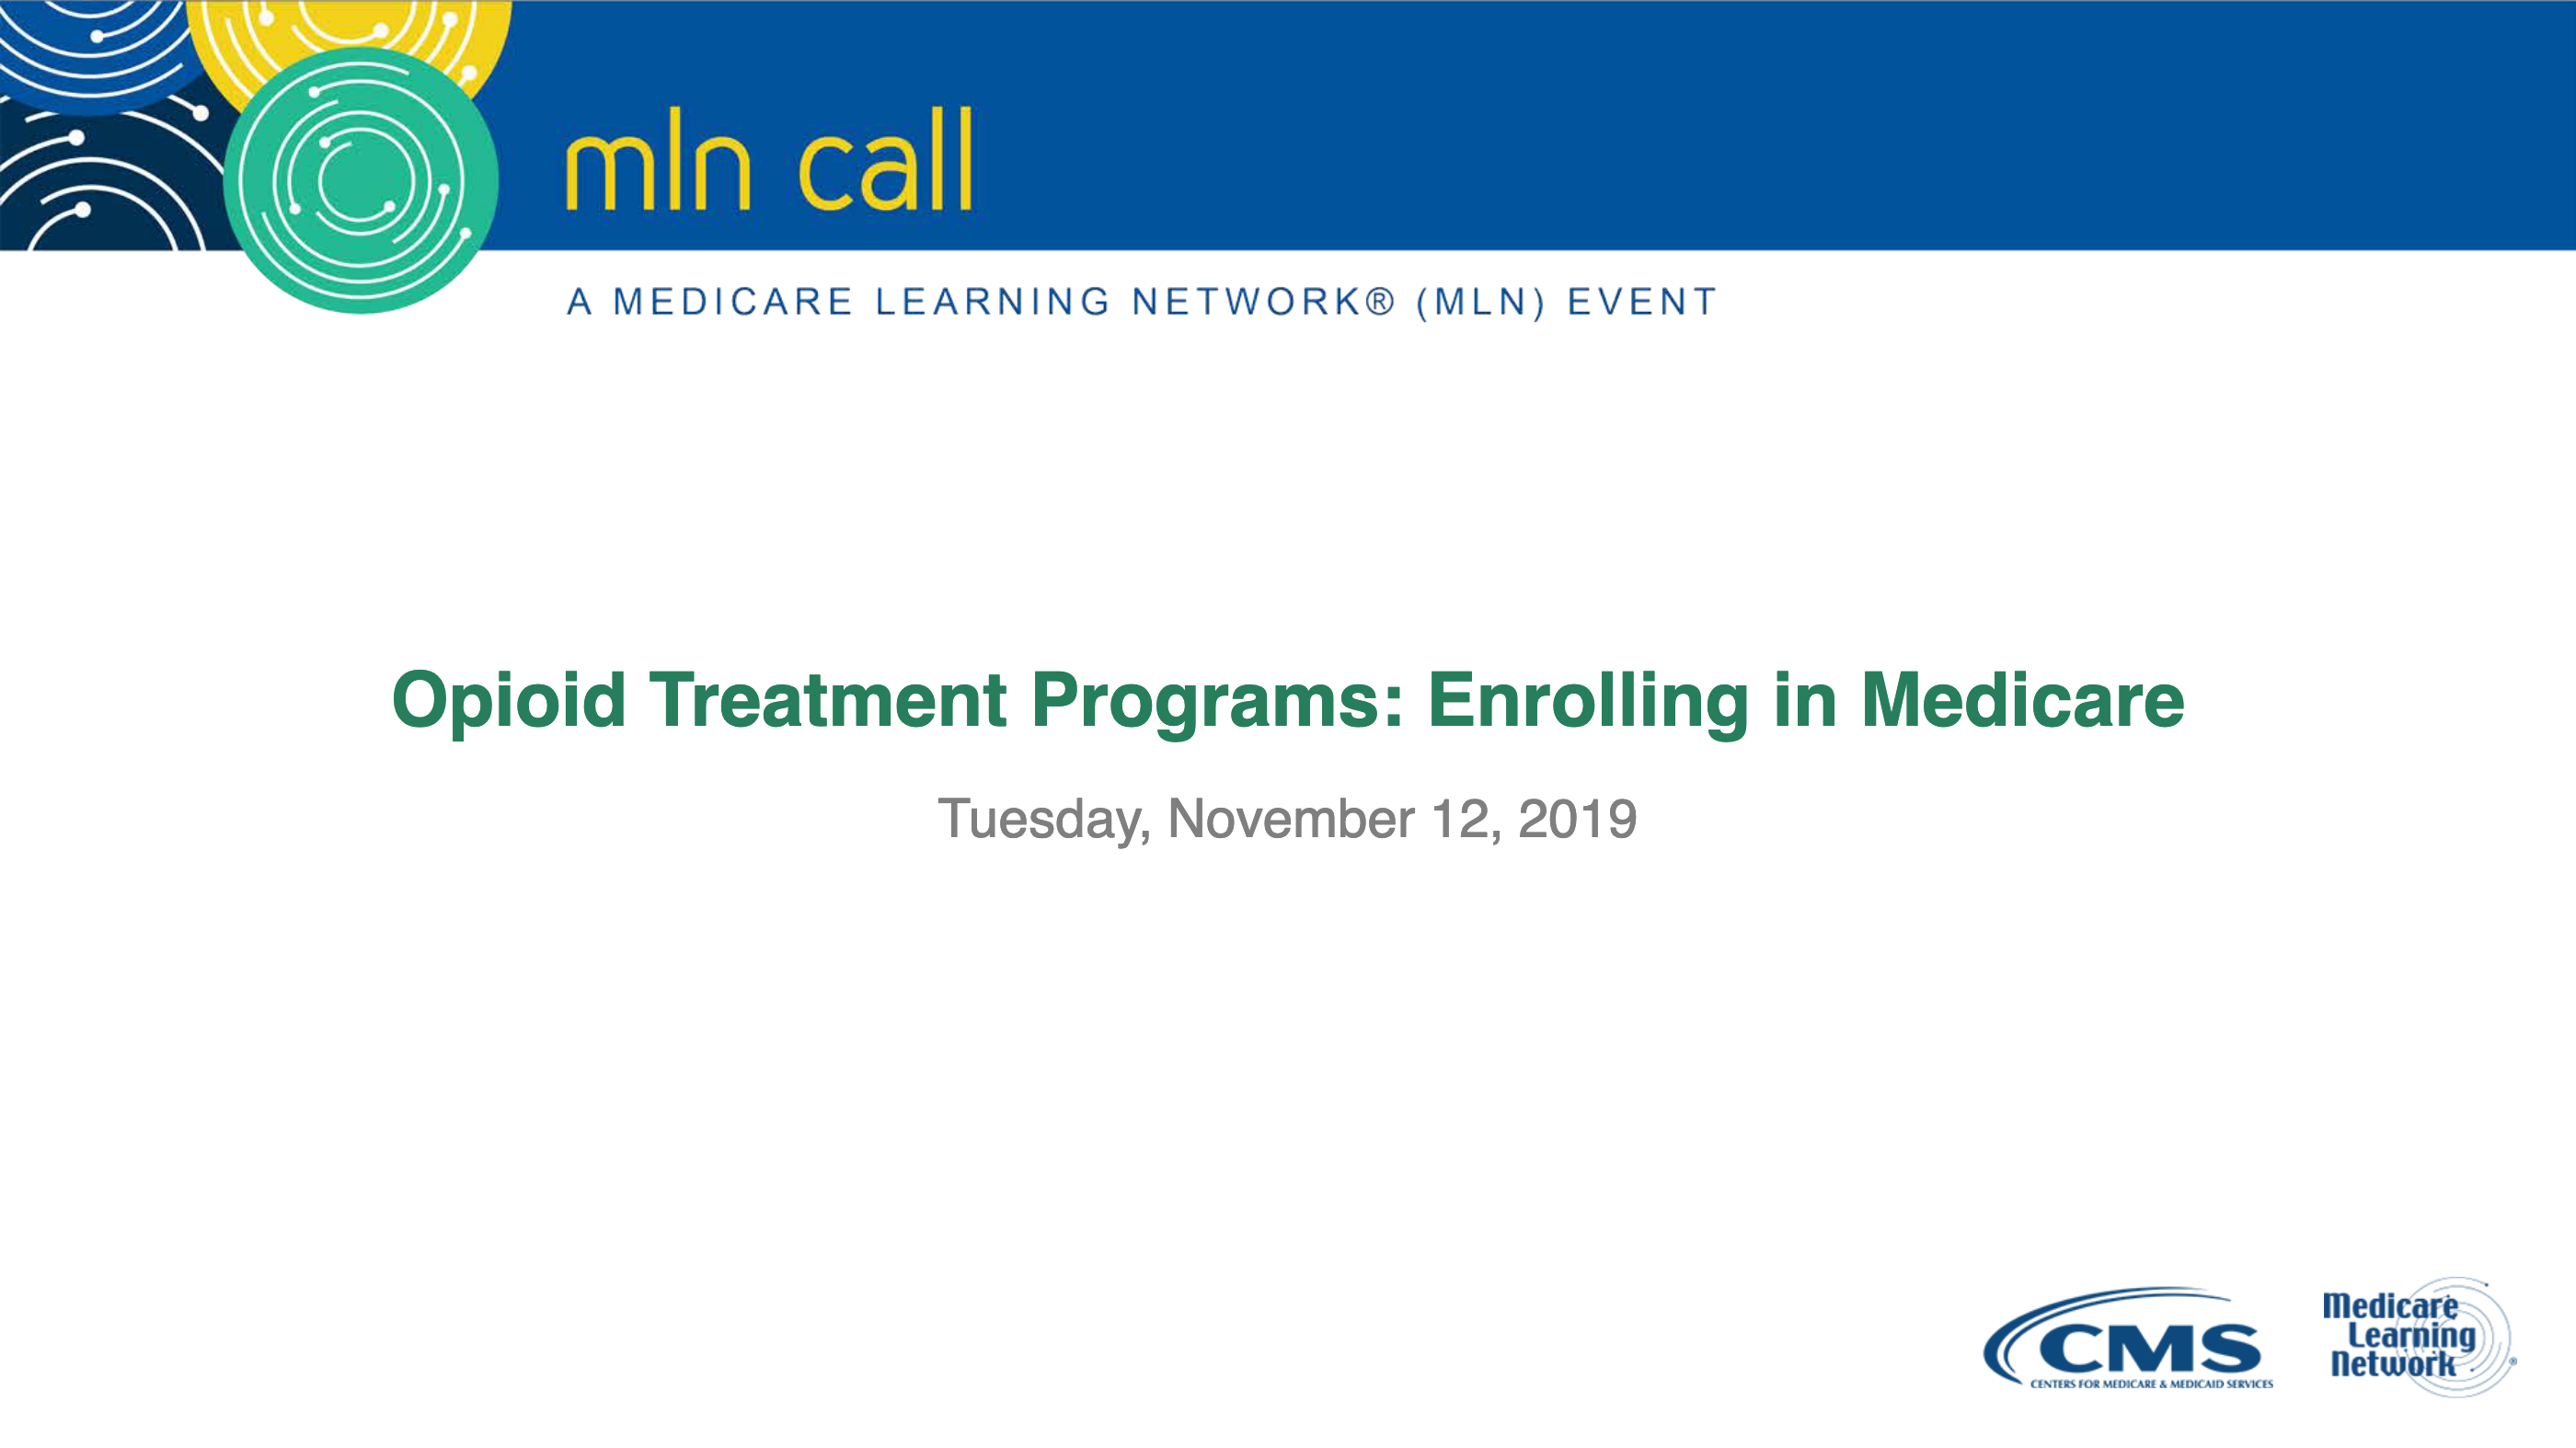 Download Opioid Treatment Programs: Enrolling in Medicare in PDF format.